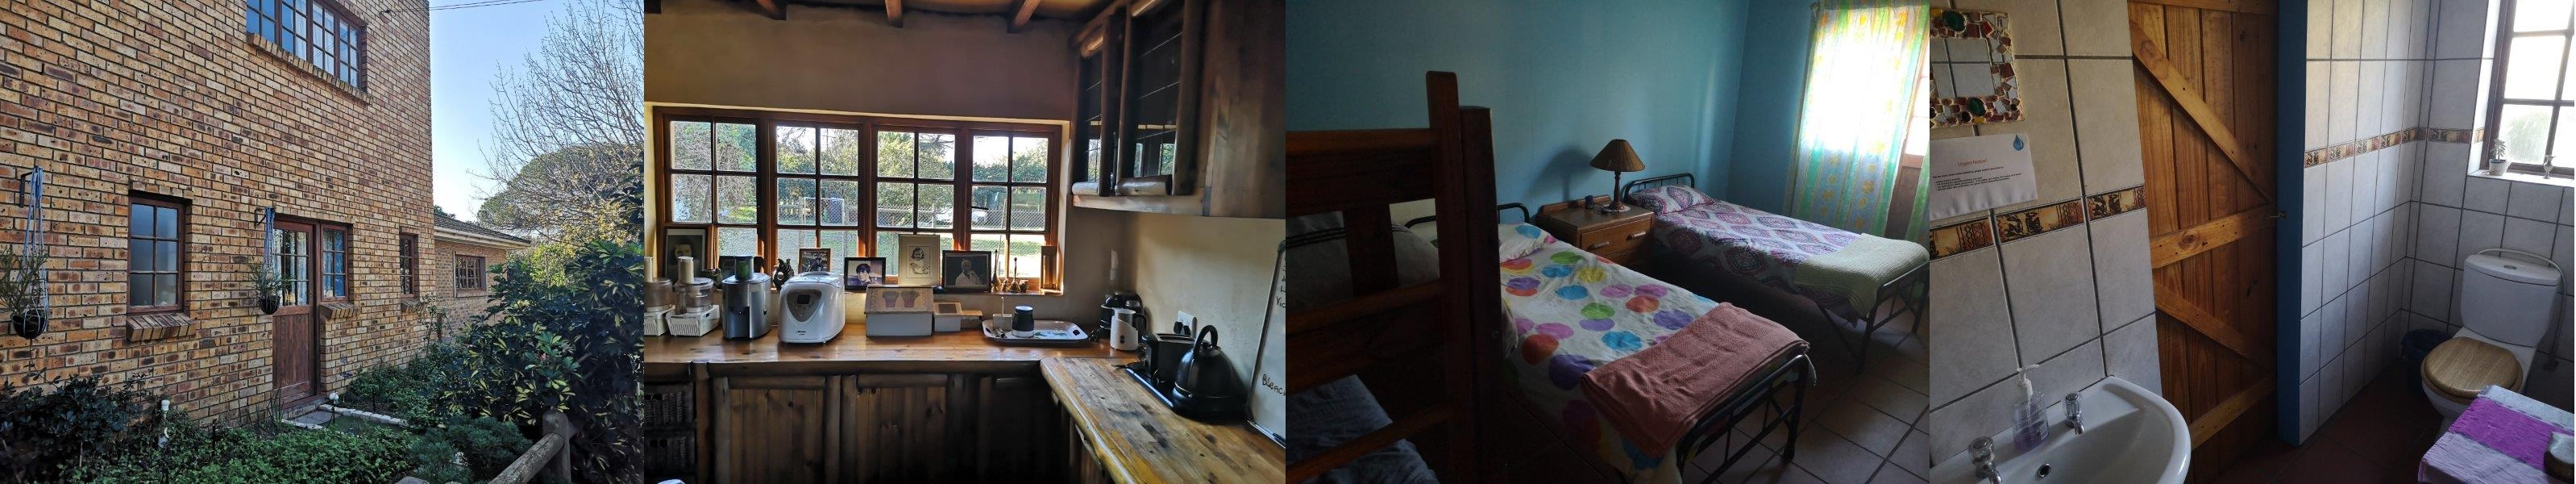 Accommodation at the primary school volunteer project in Cape town